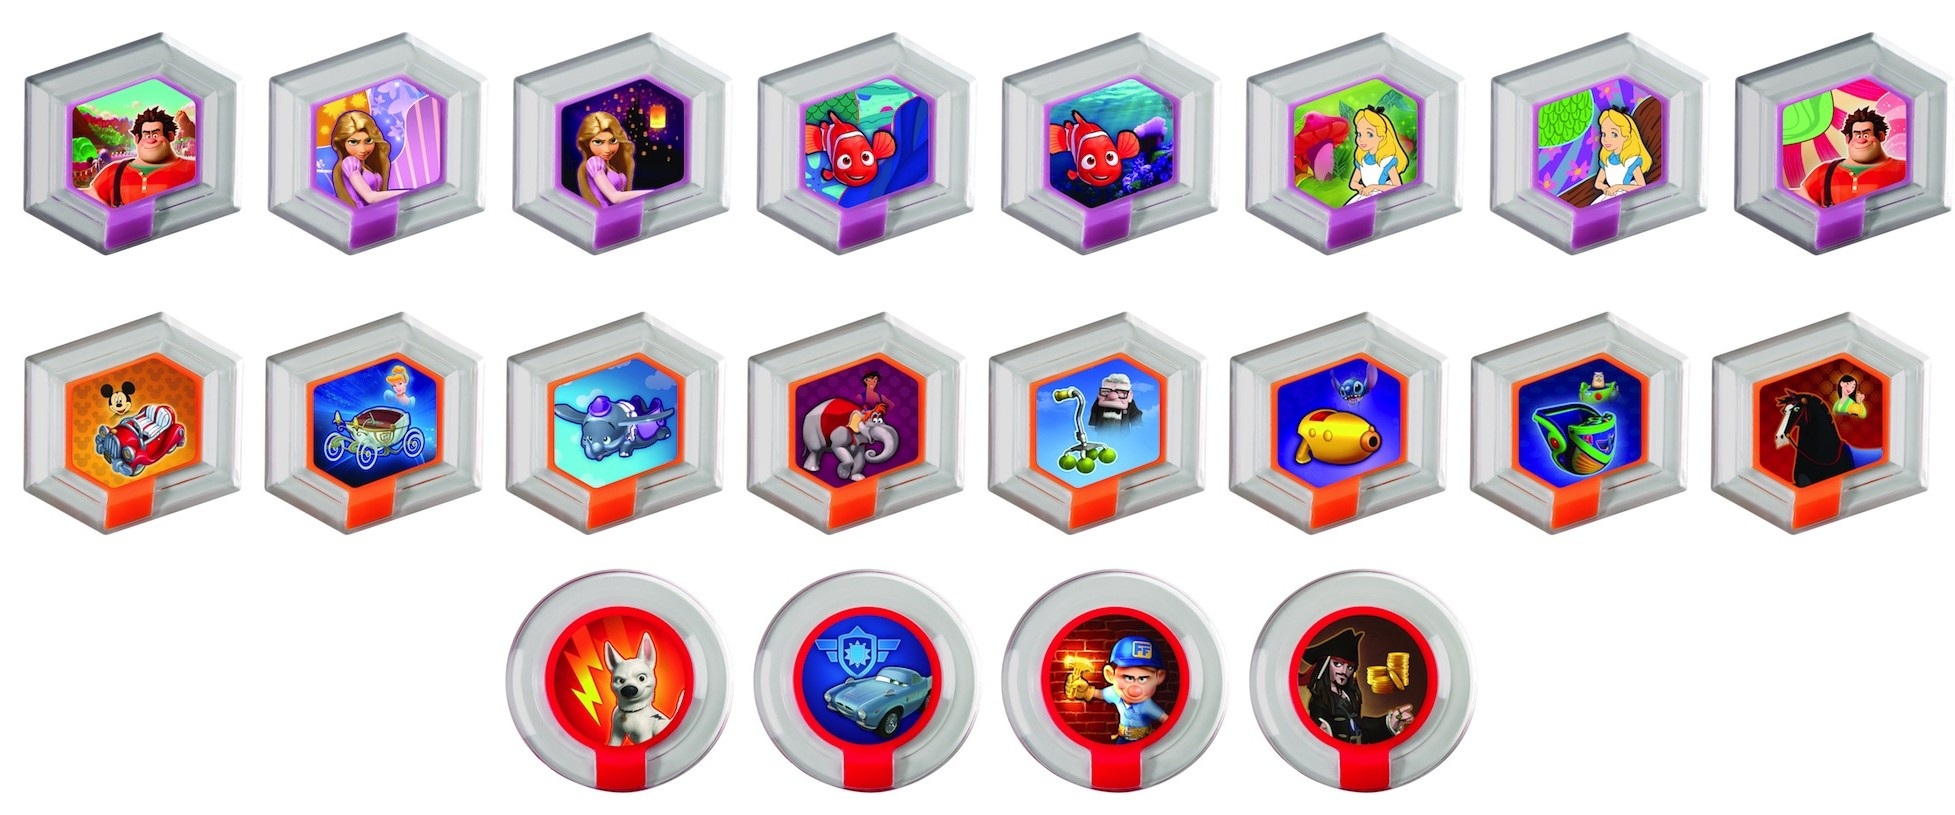 Disney Infinity: Complete List Of Power Discs In Wave 1